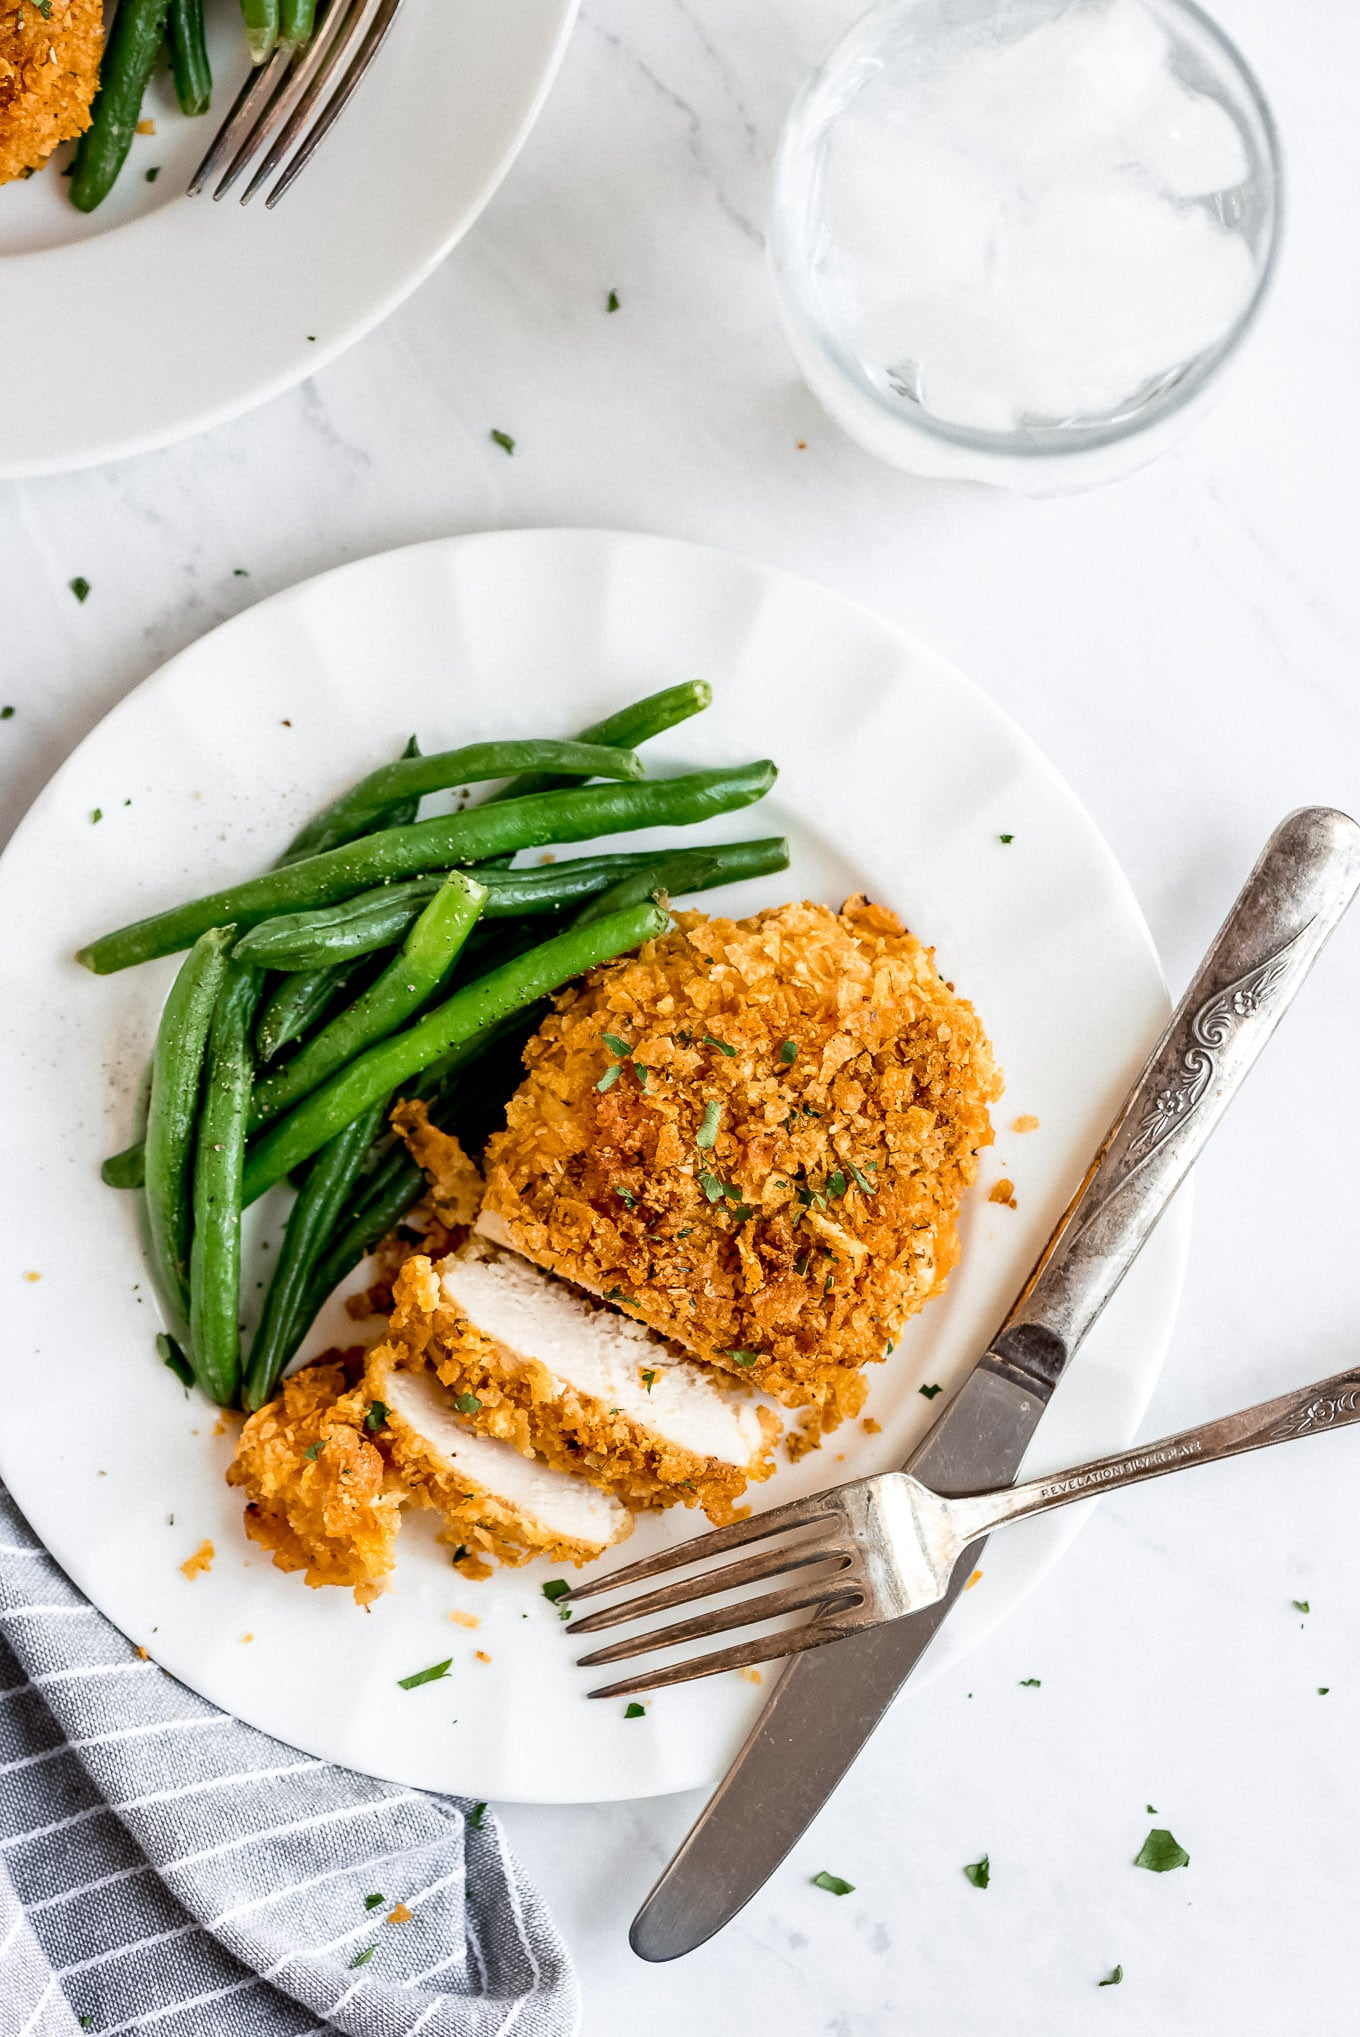 Crispy baked chicken partially sliced on a plate with a side of green beans.